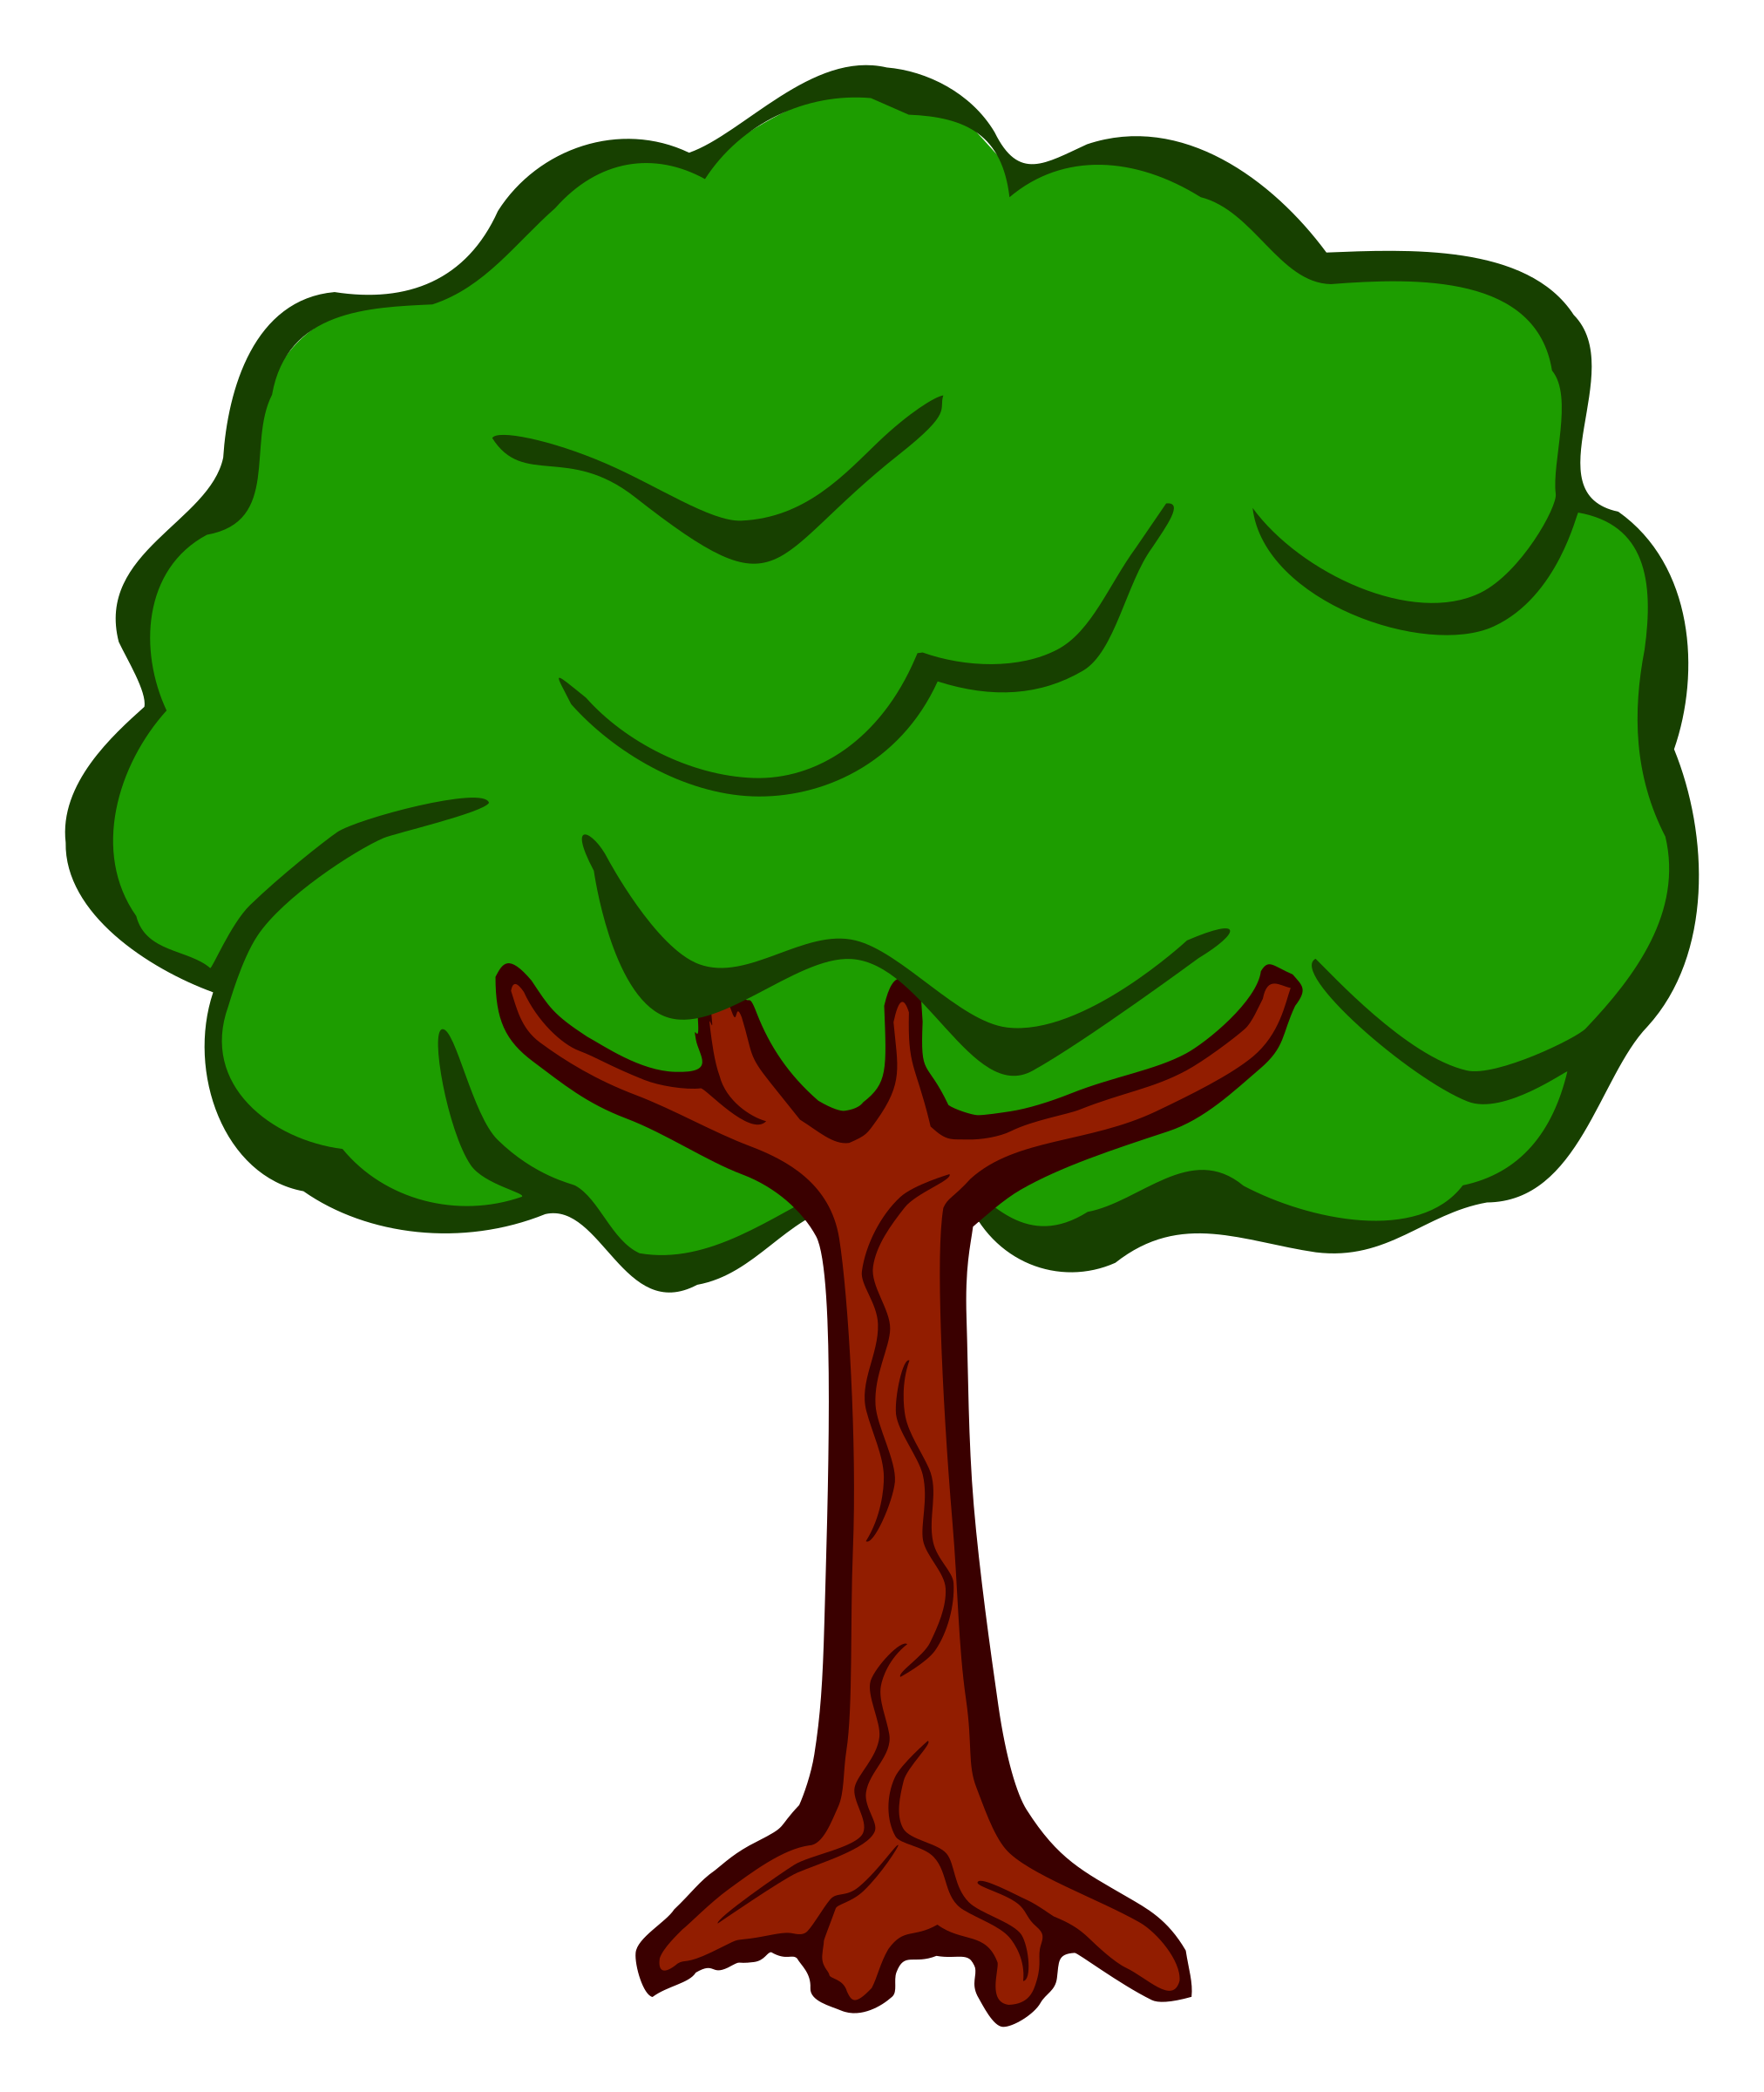 Tree clipart printable, Tree printable Transparent FREE for